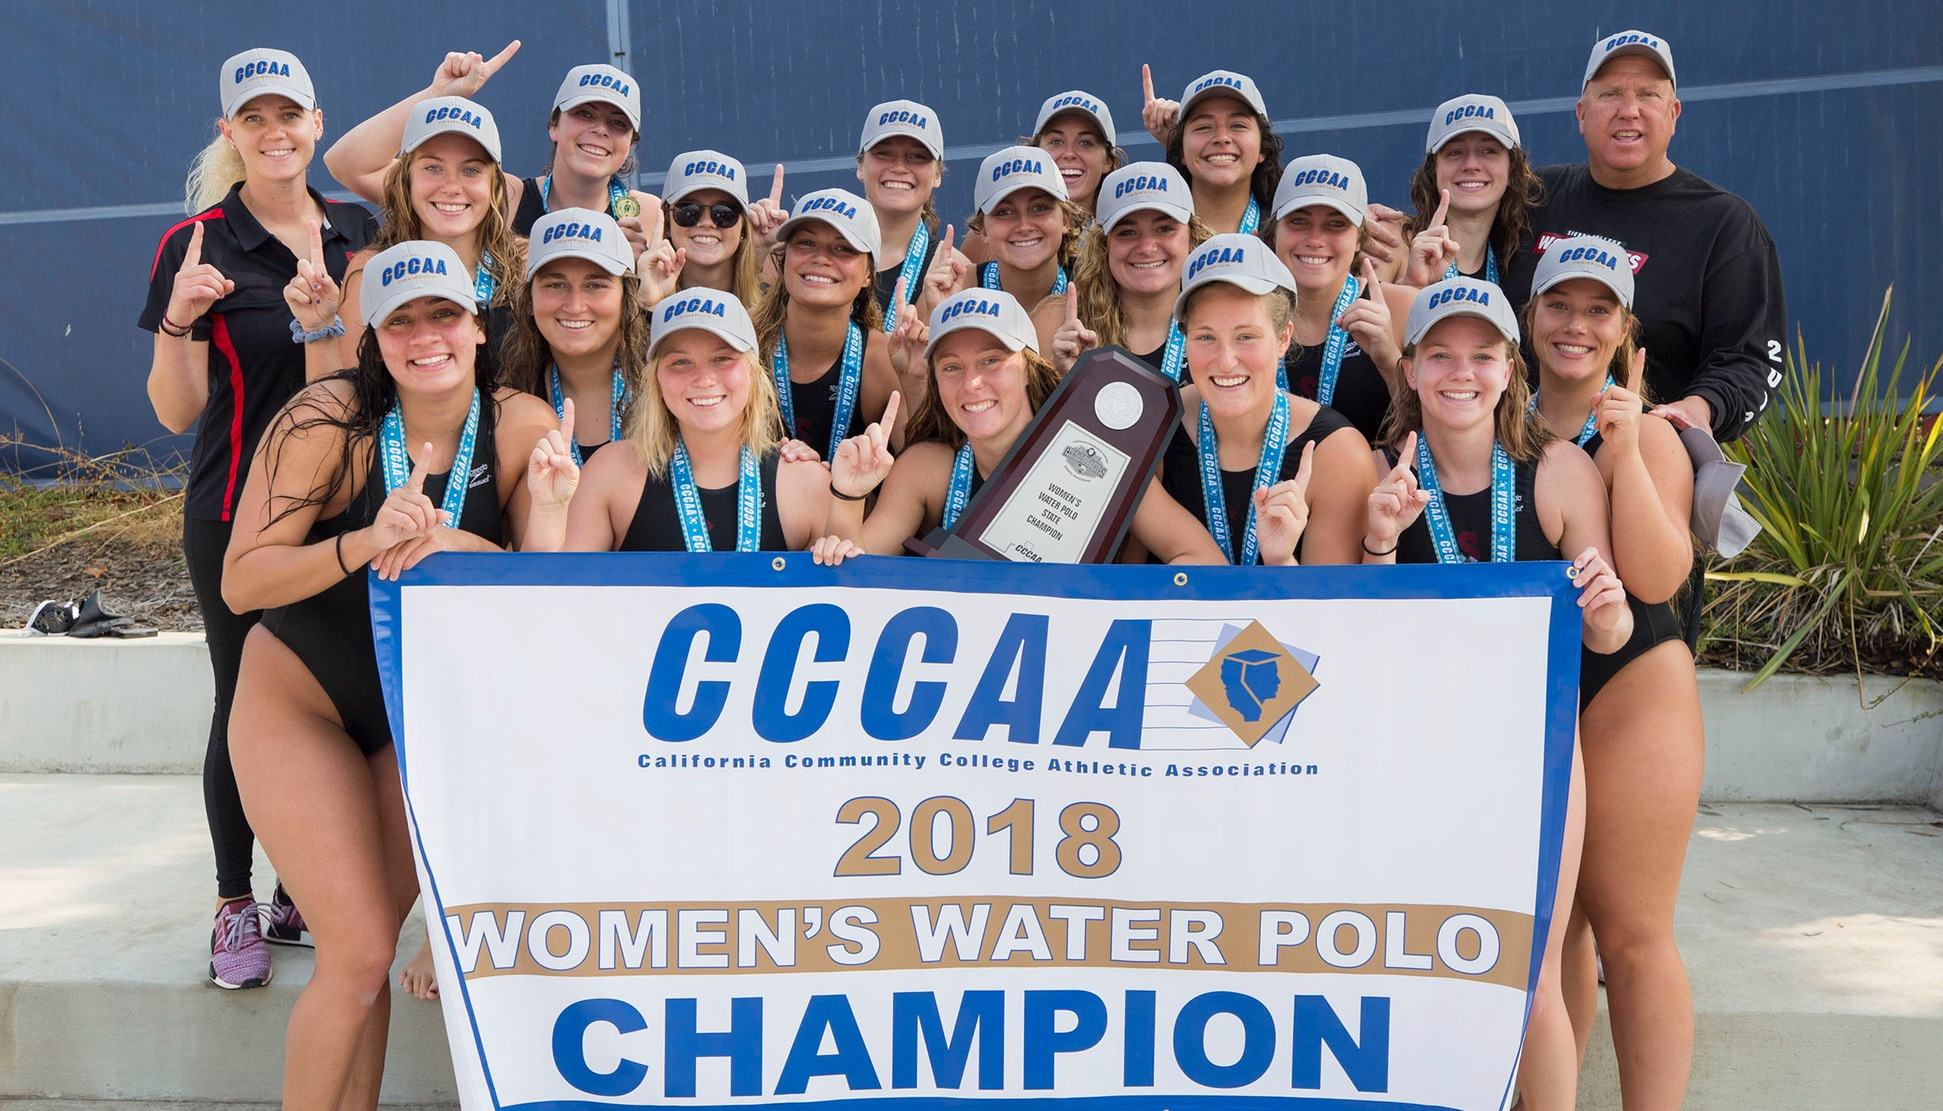 Women's Water Polo State Champions 2018